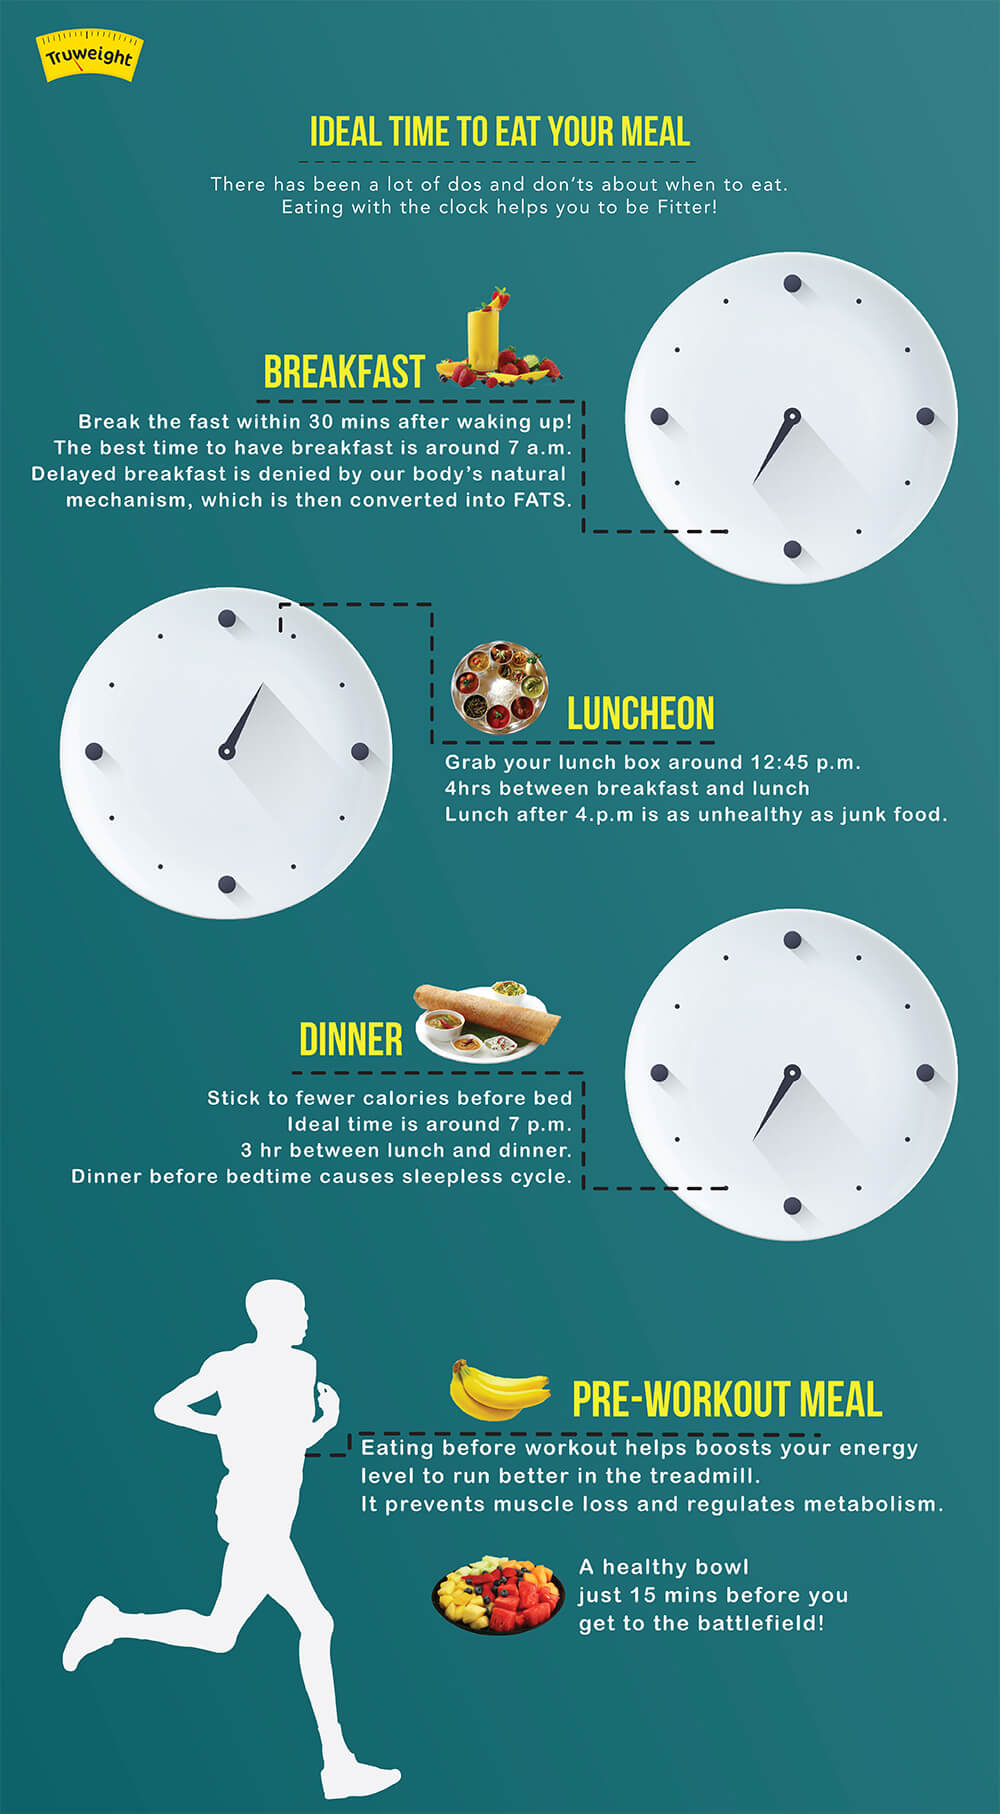 Ideal-time-to-eat-your-meal